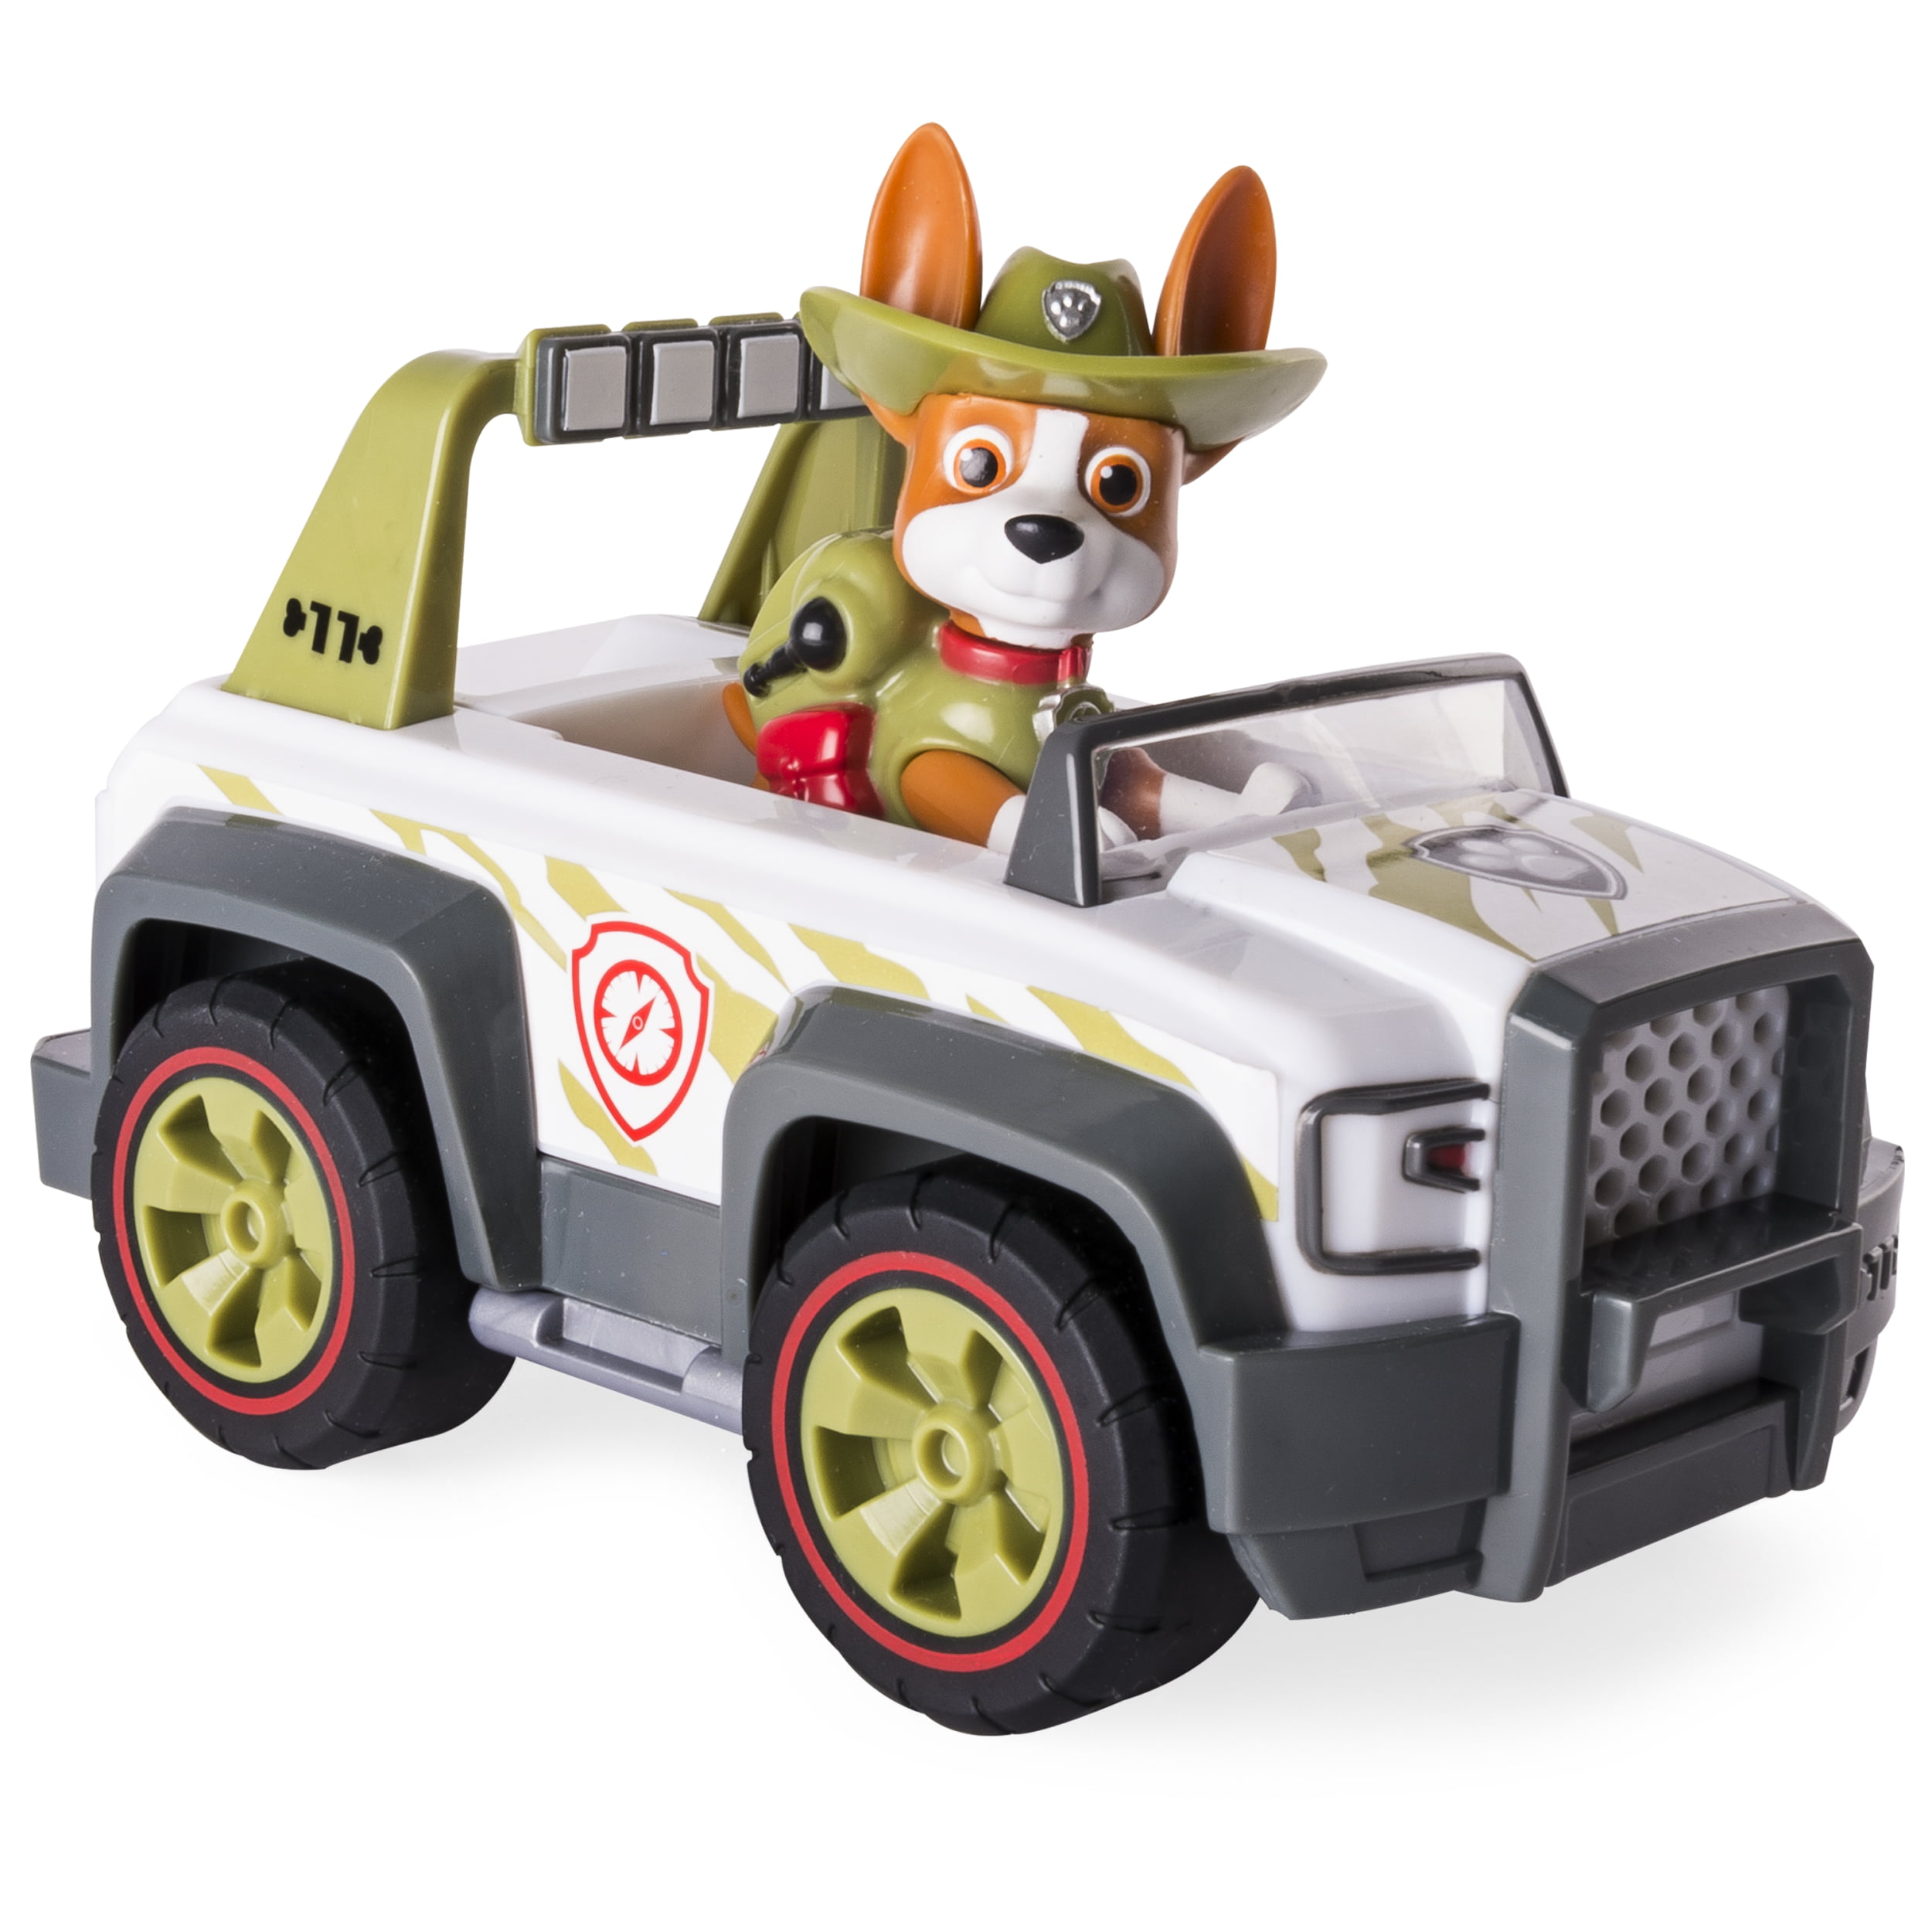 PAW PATROL 6059511 Tracker's Jungle Cruiser Vehicle with Collectible Figure